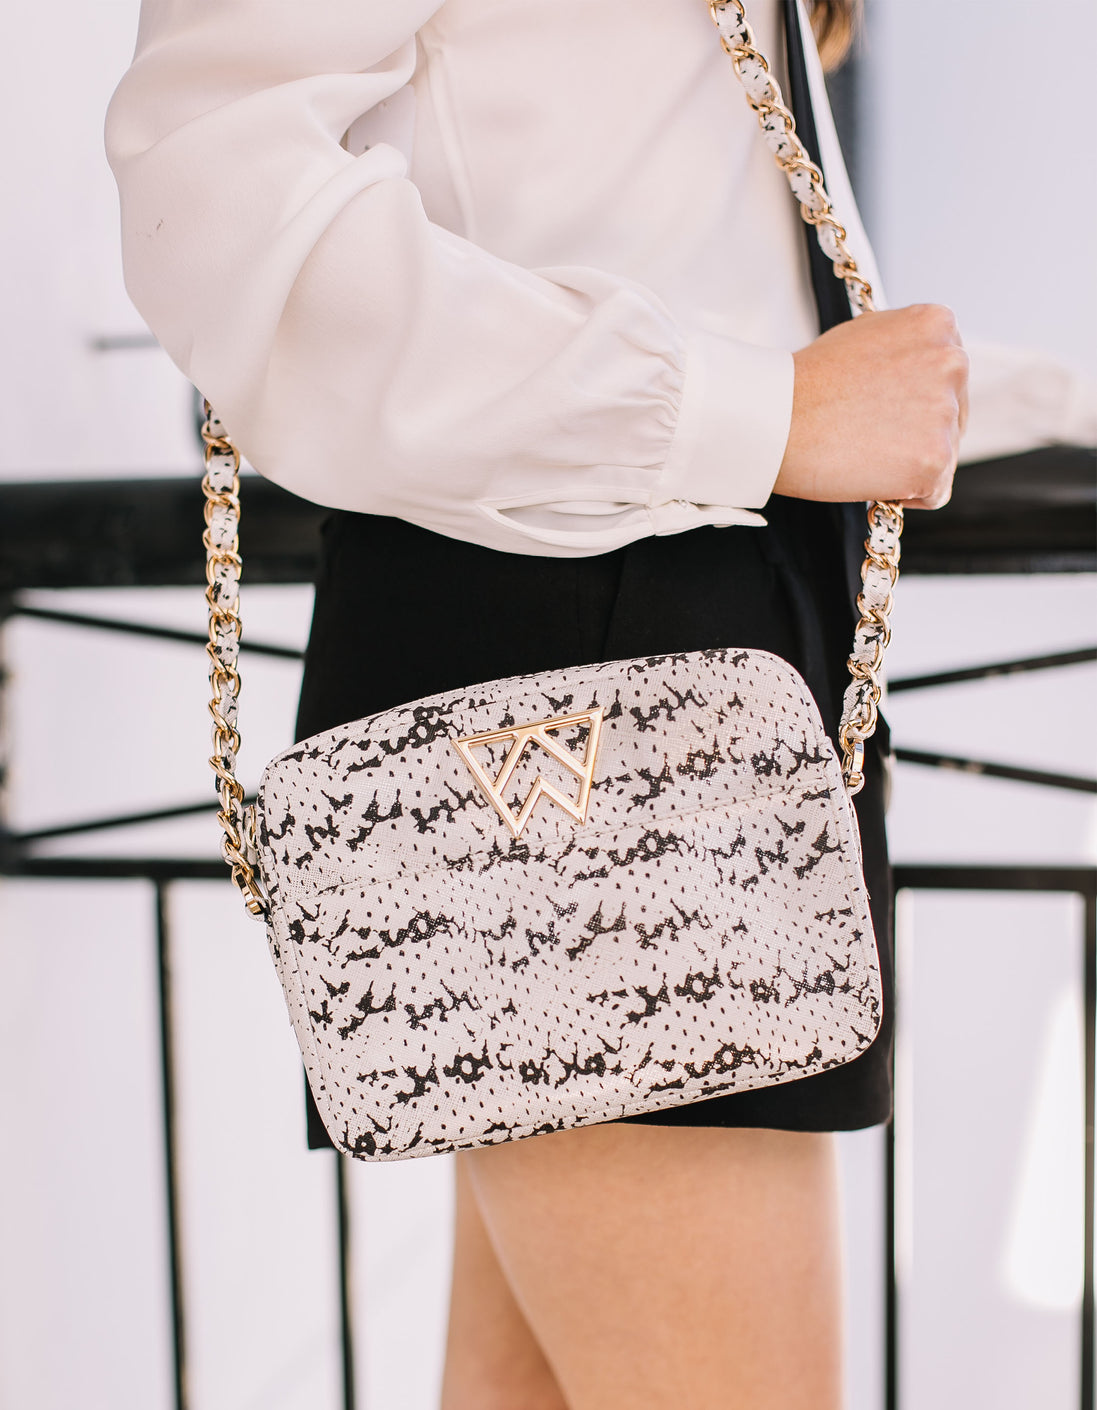 Mingle Mingle Mini in Black & White Saffie